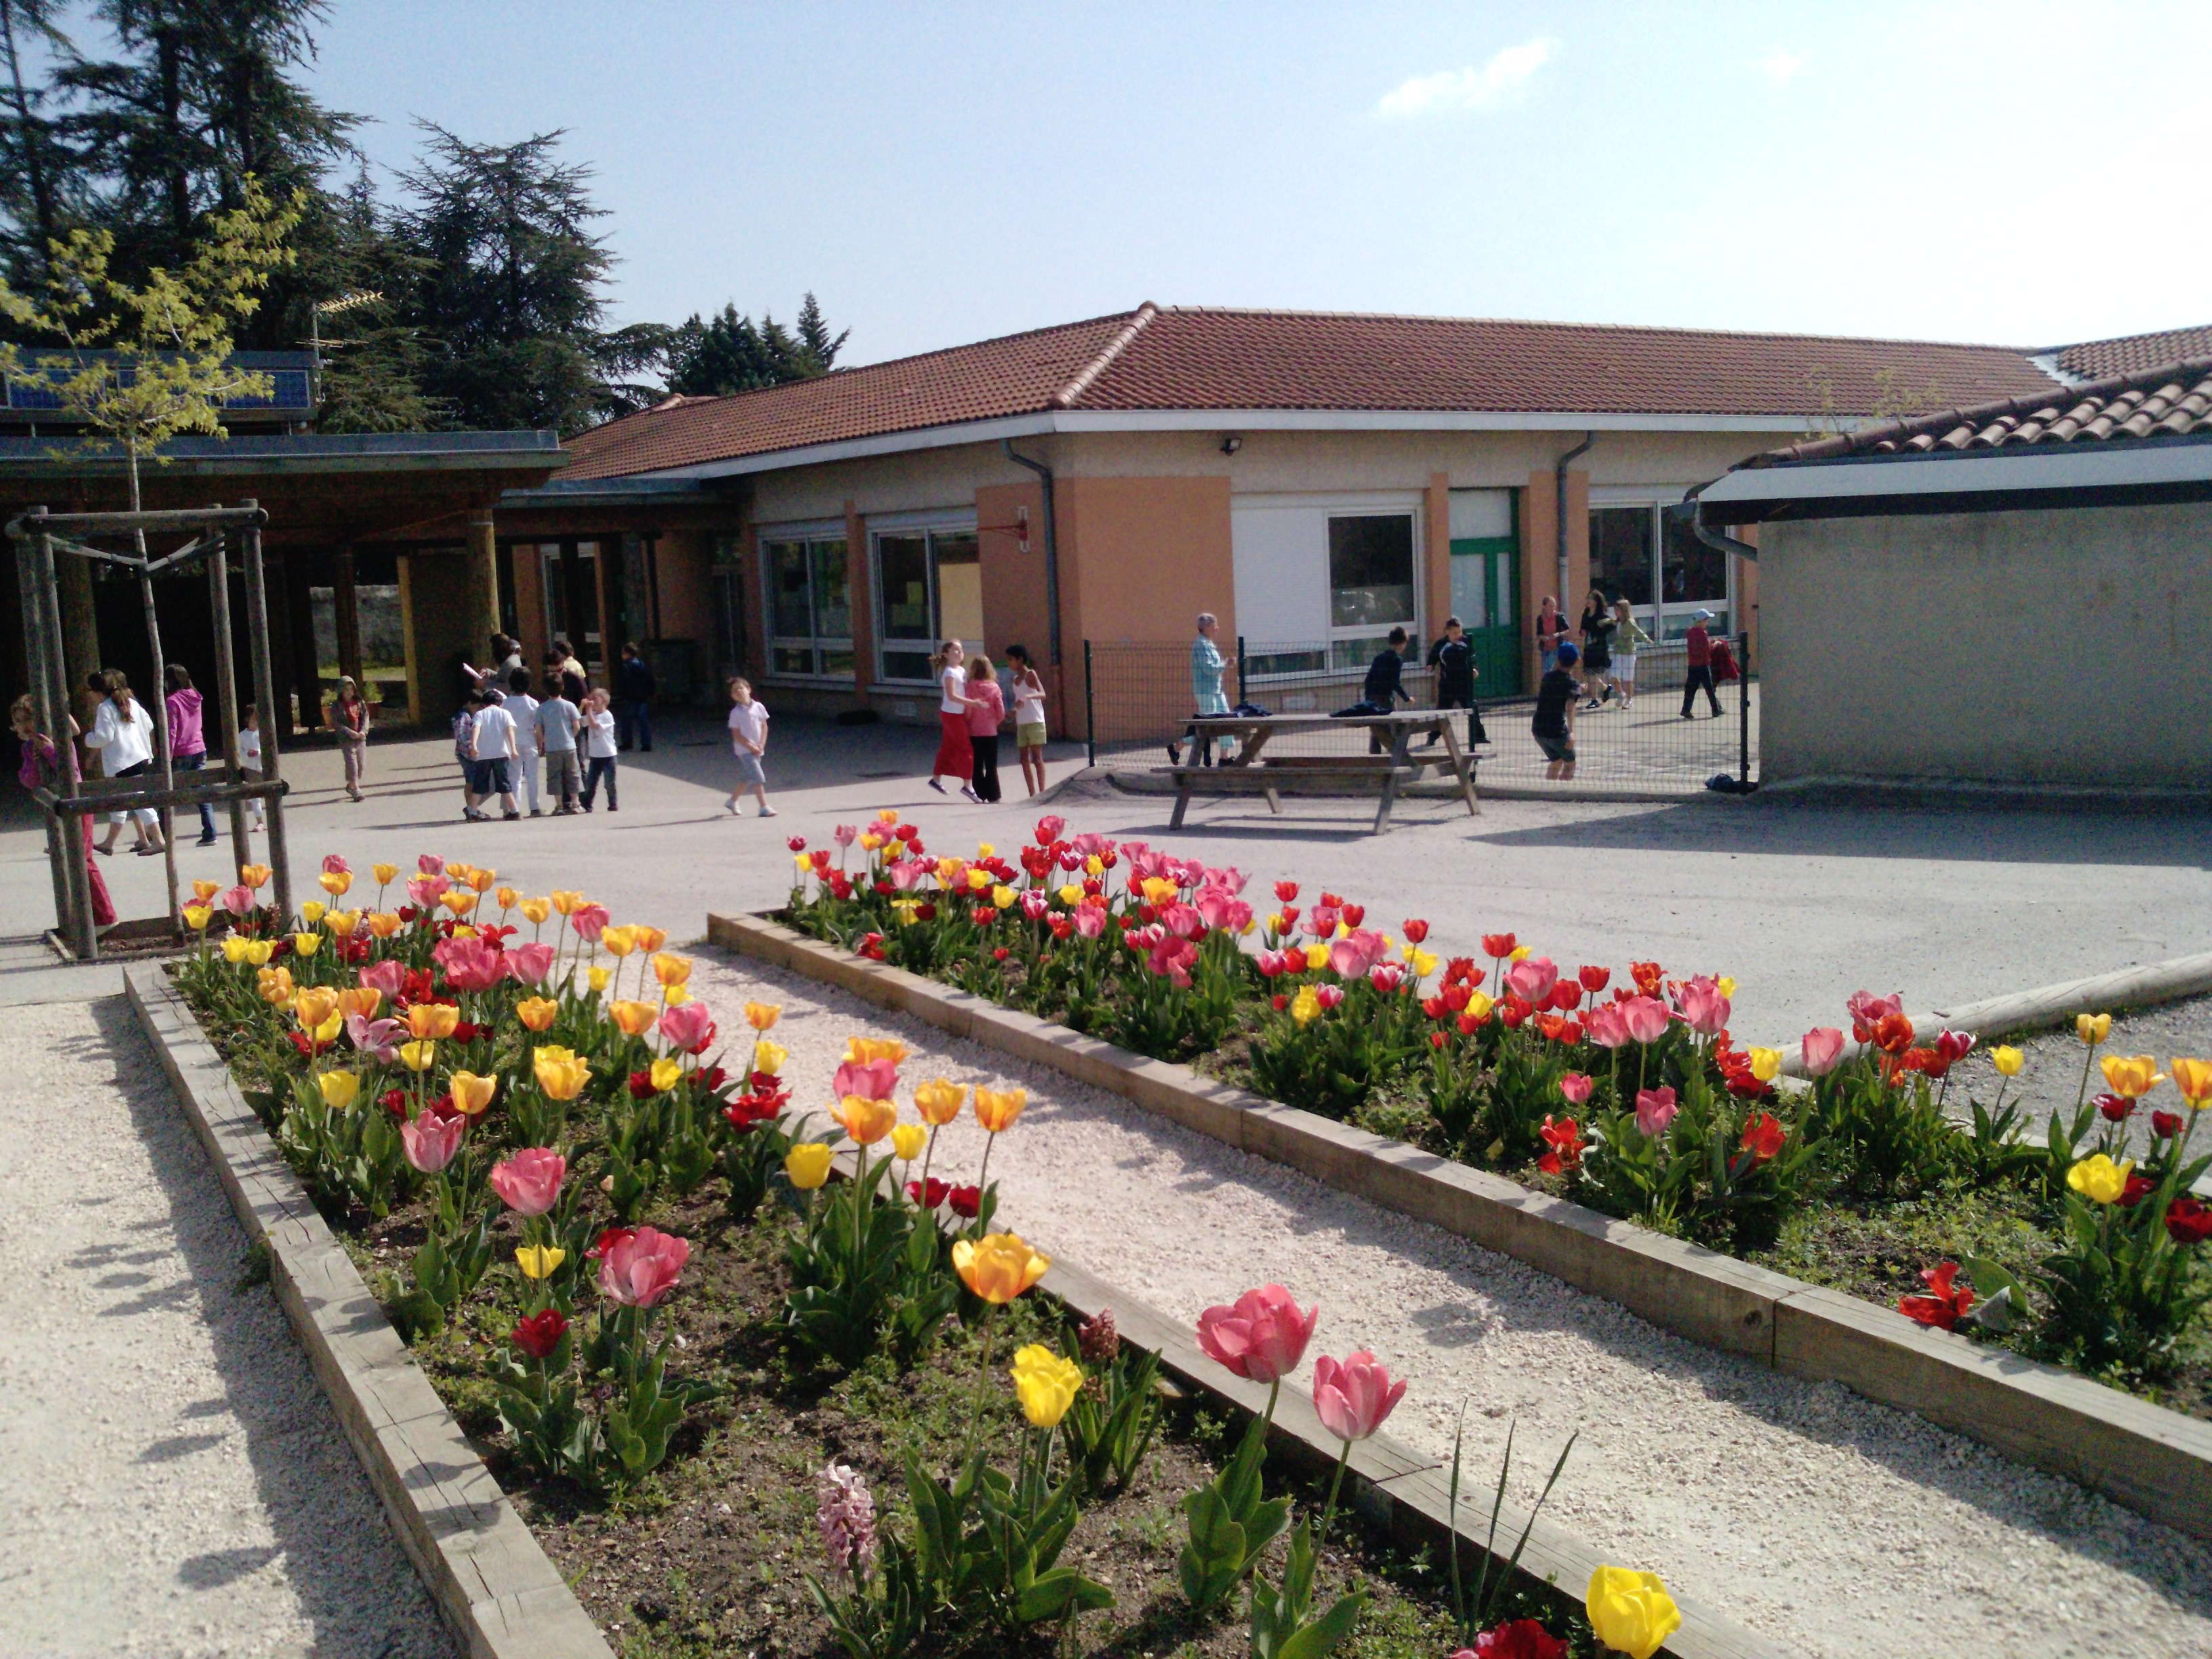 Mairie de mornant le p riscolaire for Piscine de mornant